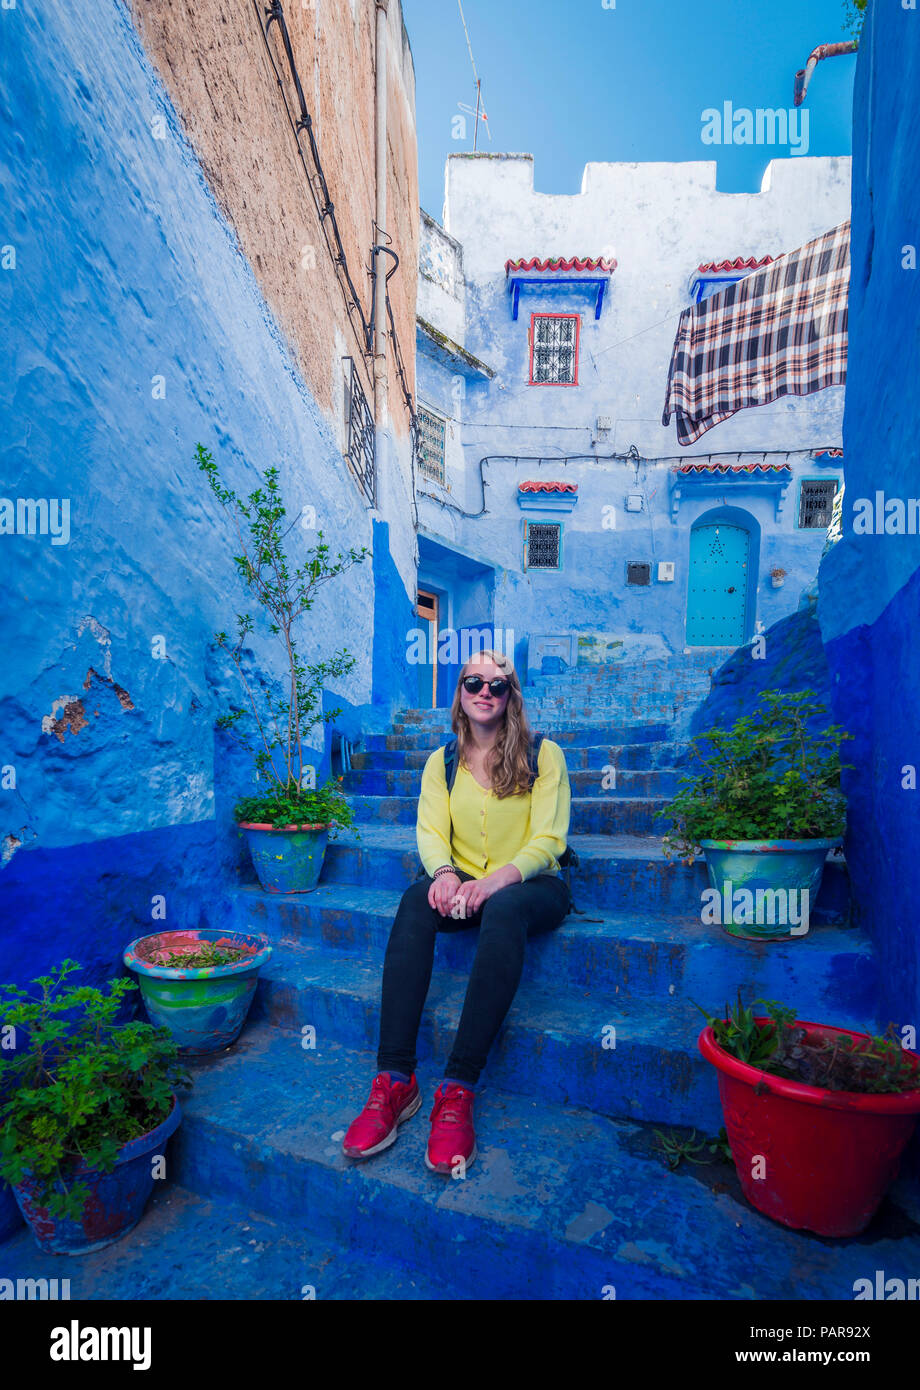 Young woman sits on stairs in the old town, blue house facades, medina of Chefchaouen, Chaouen, Tangier-Tétouan, Morocco Stock Photo